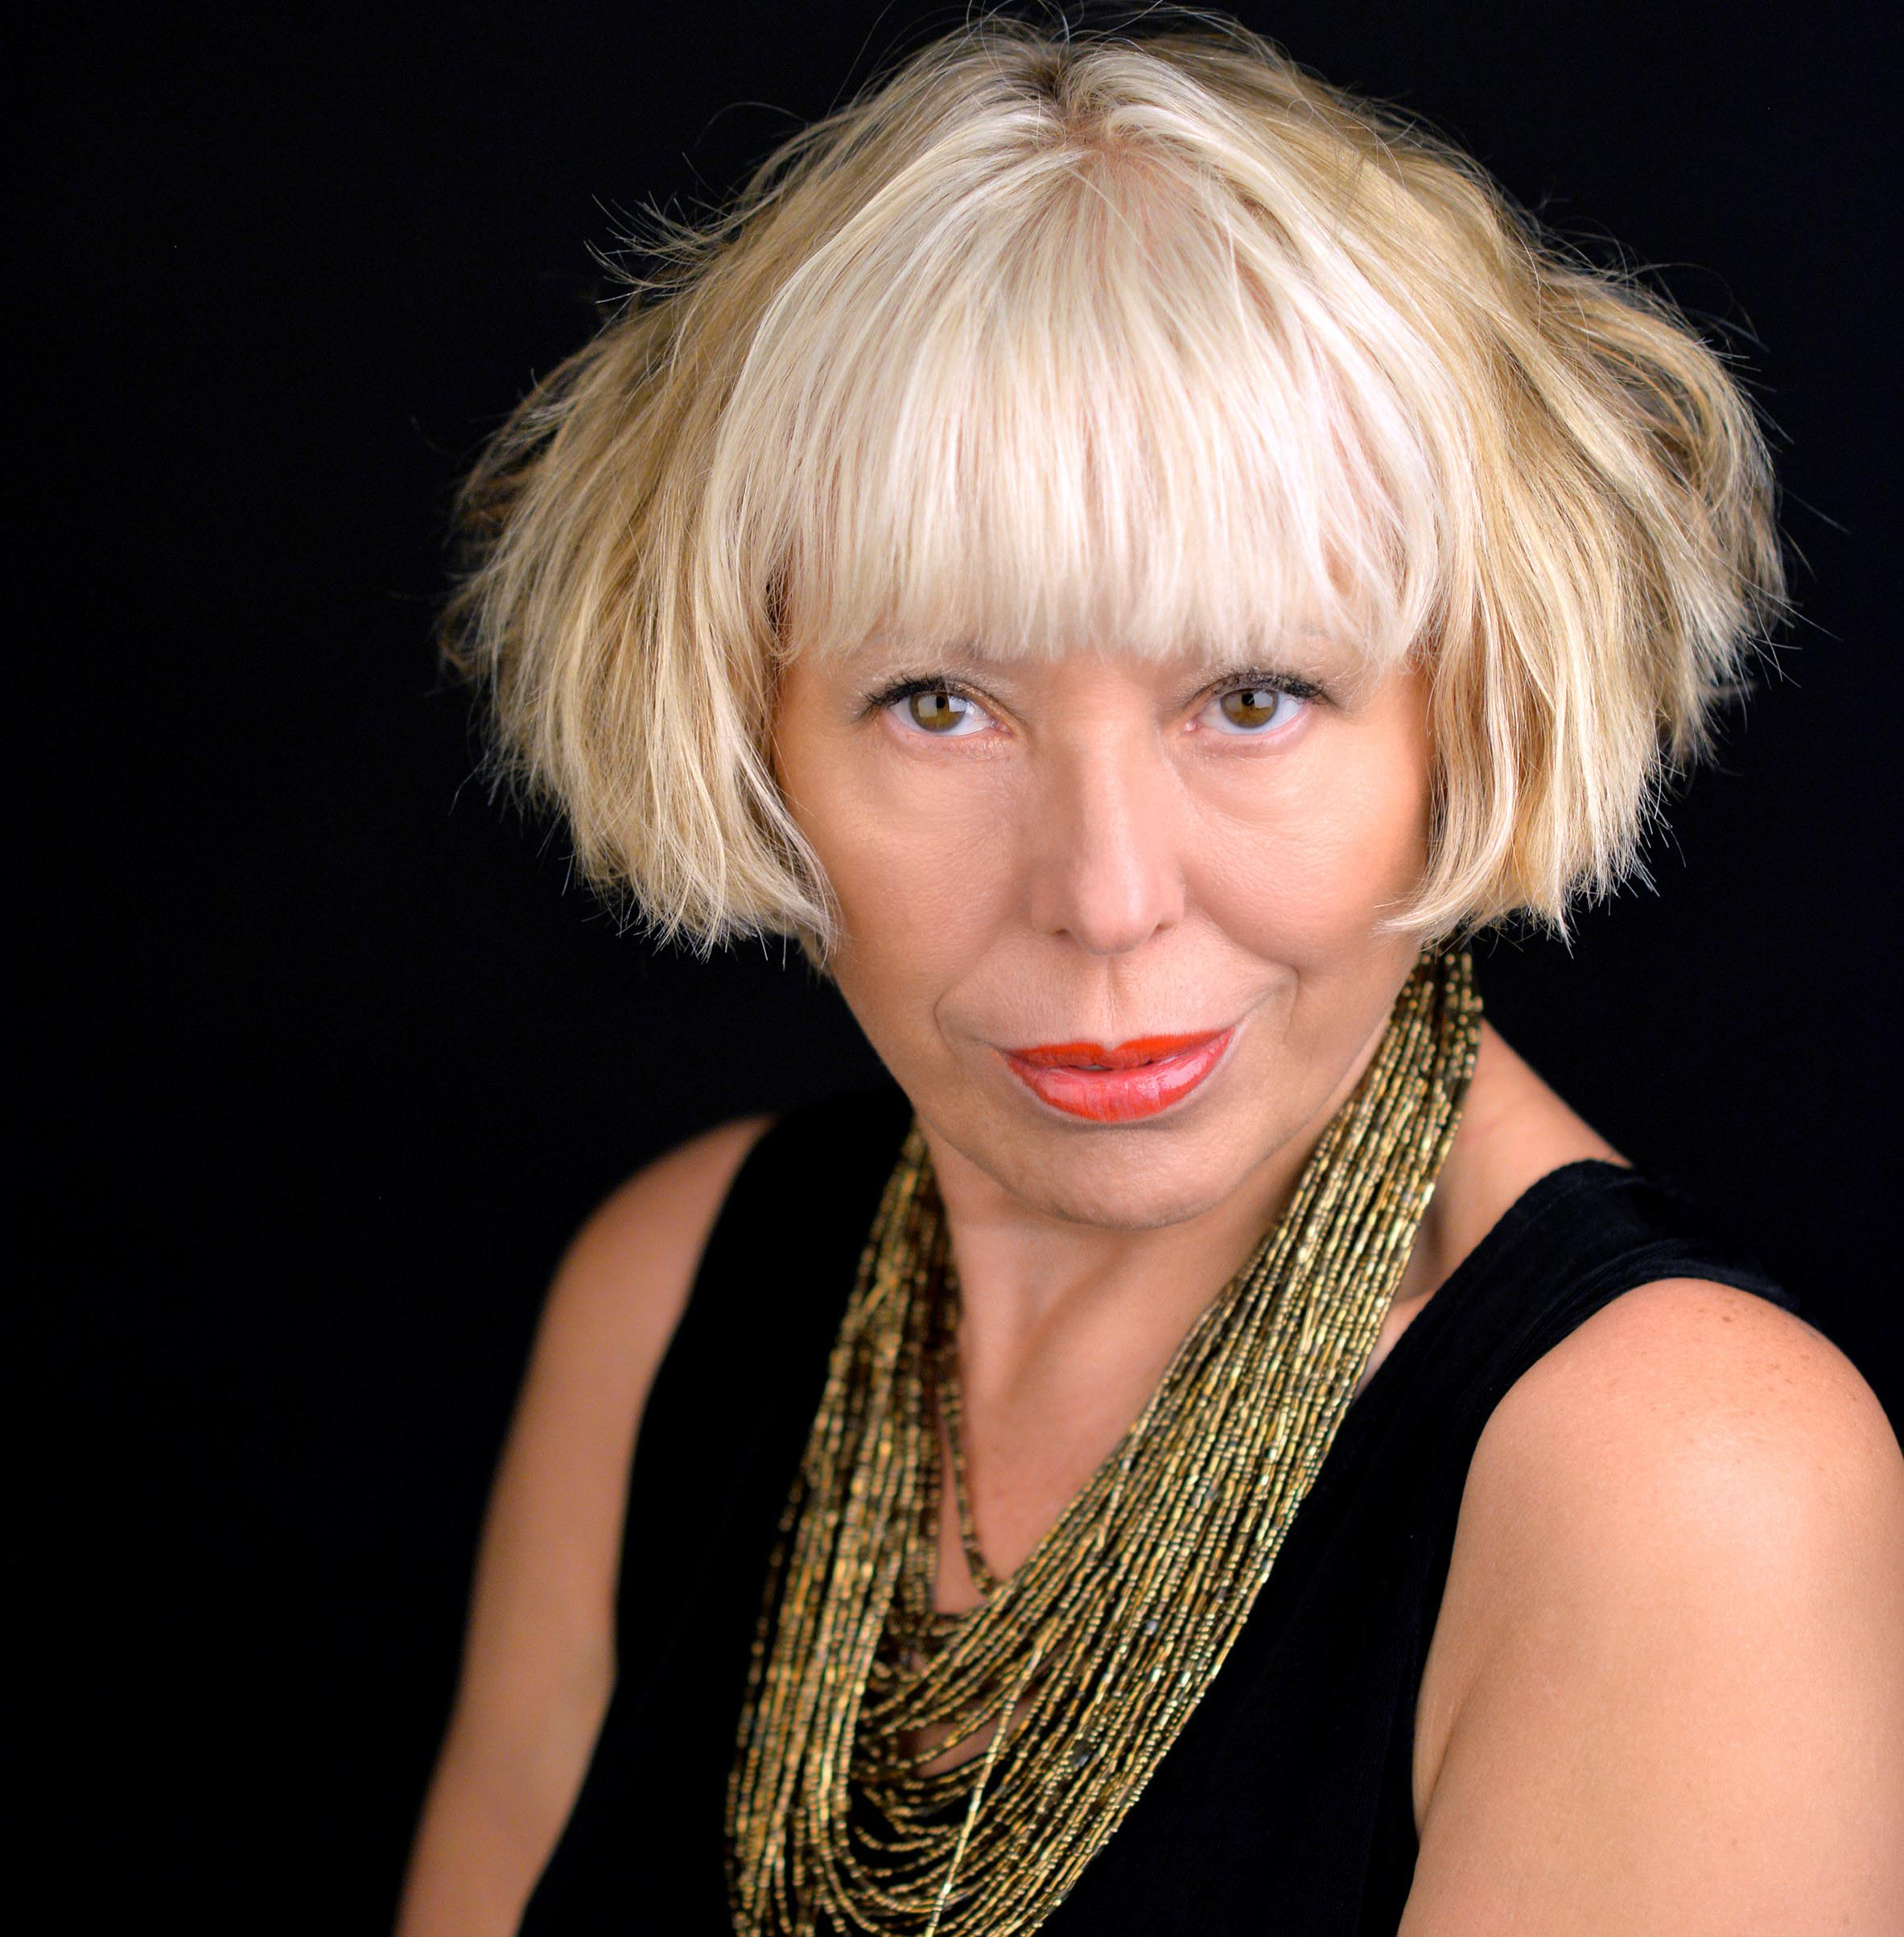 Barb Jungr will perform at the Bull's Head in Barnes this Saturday